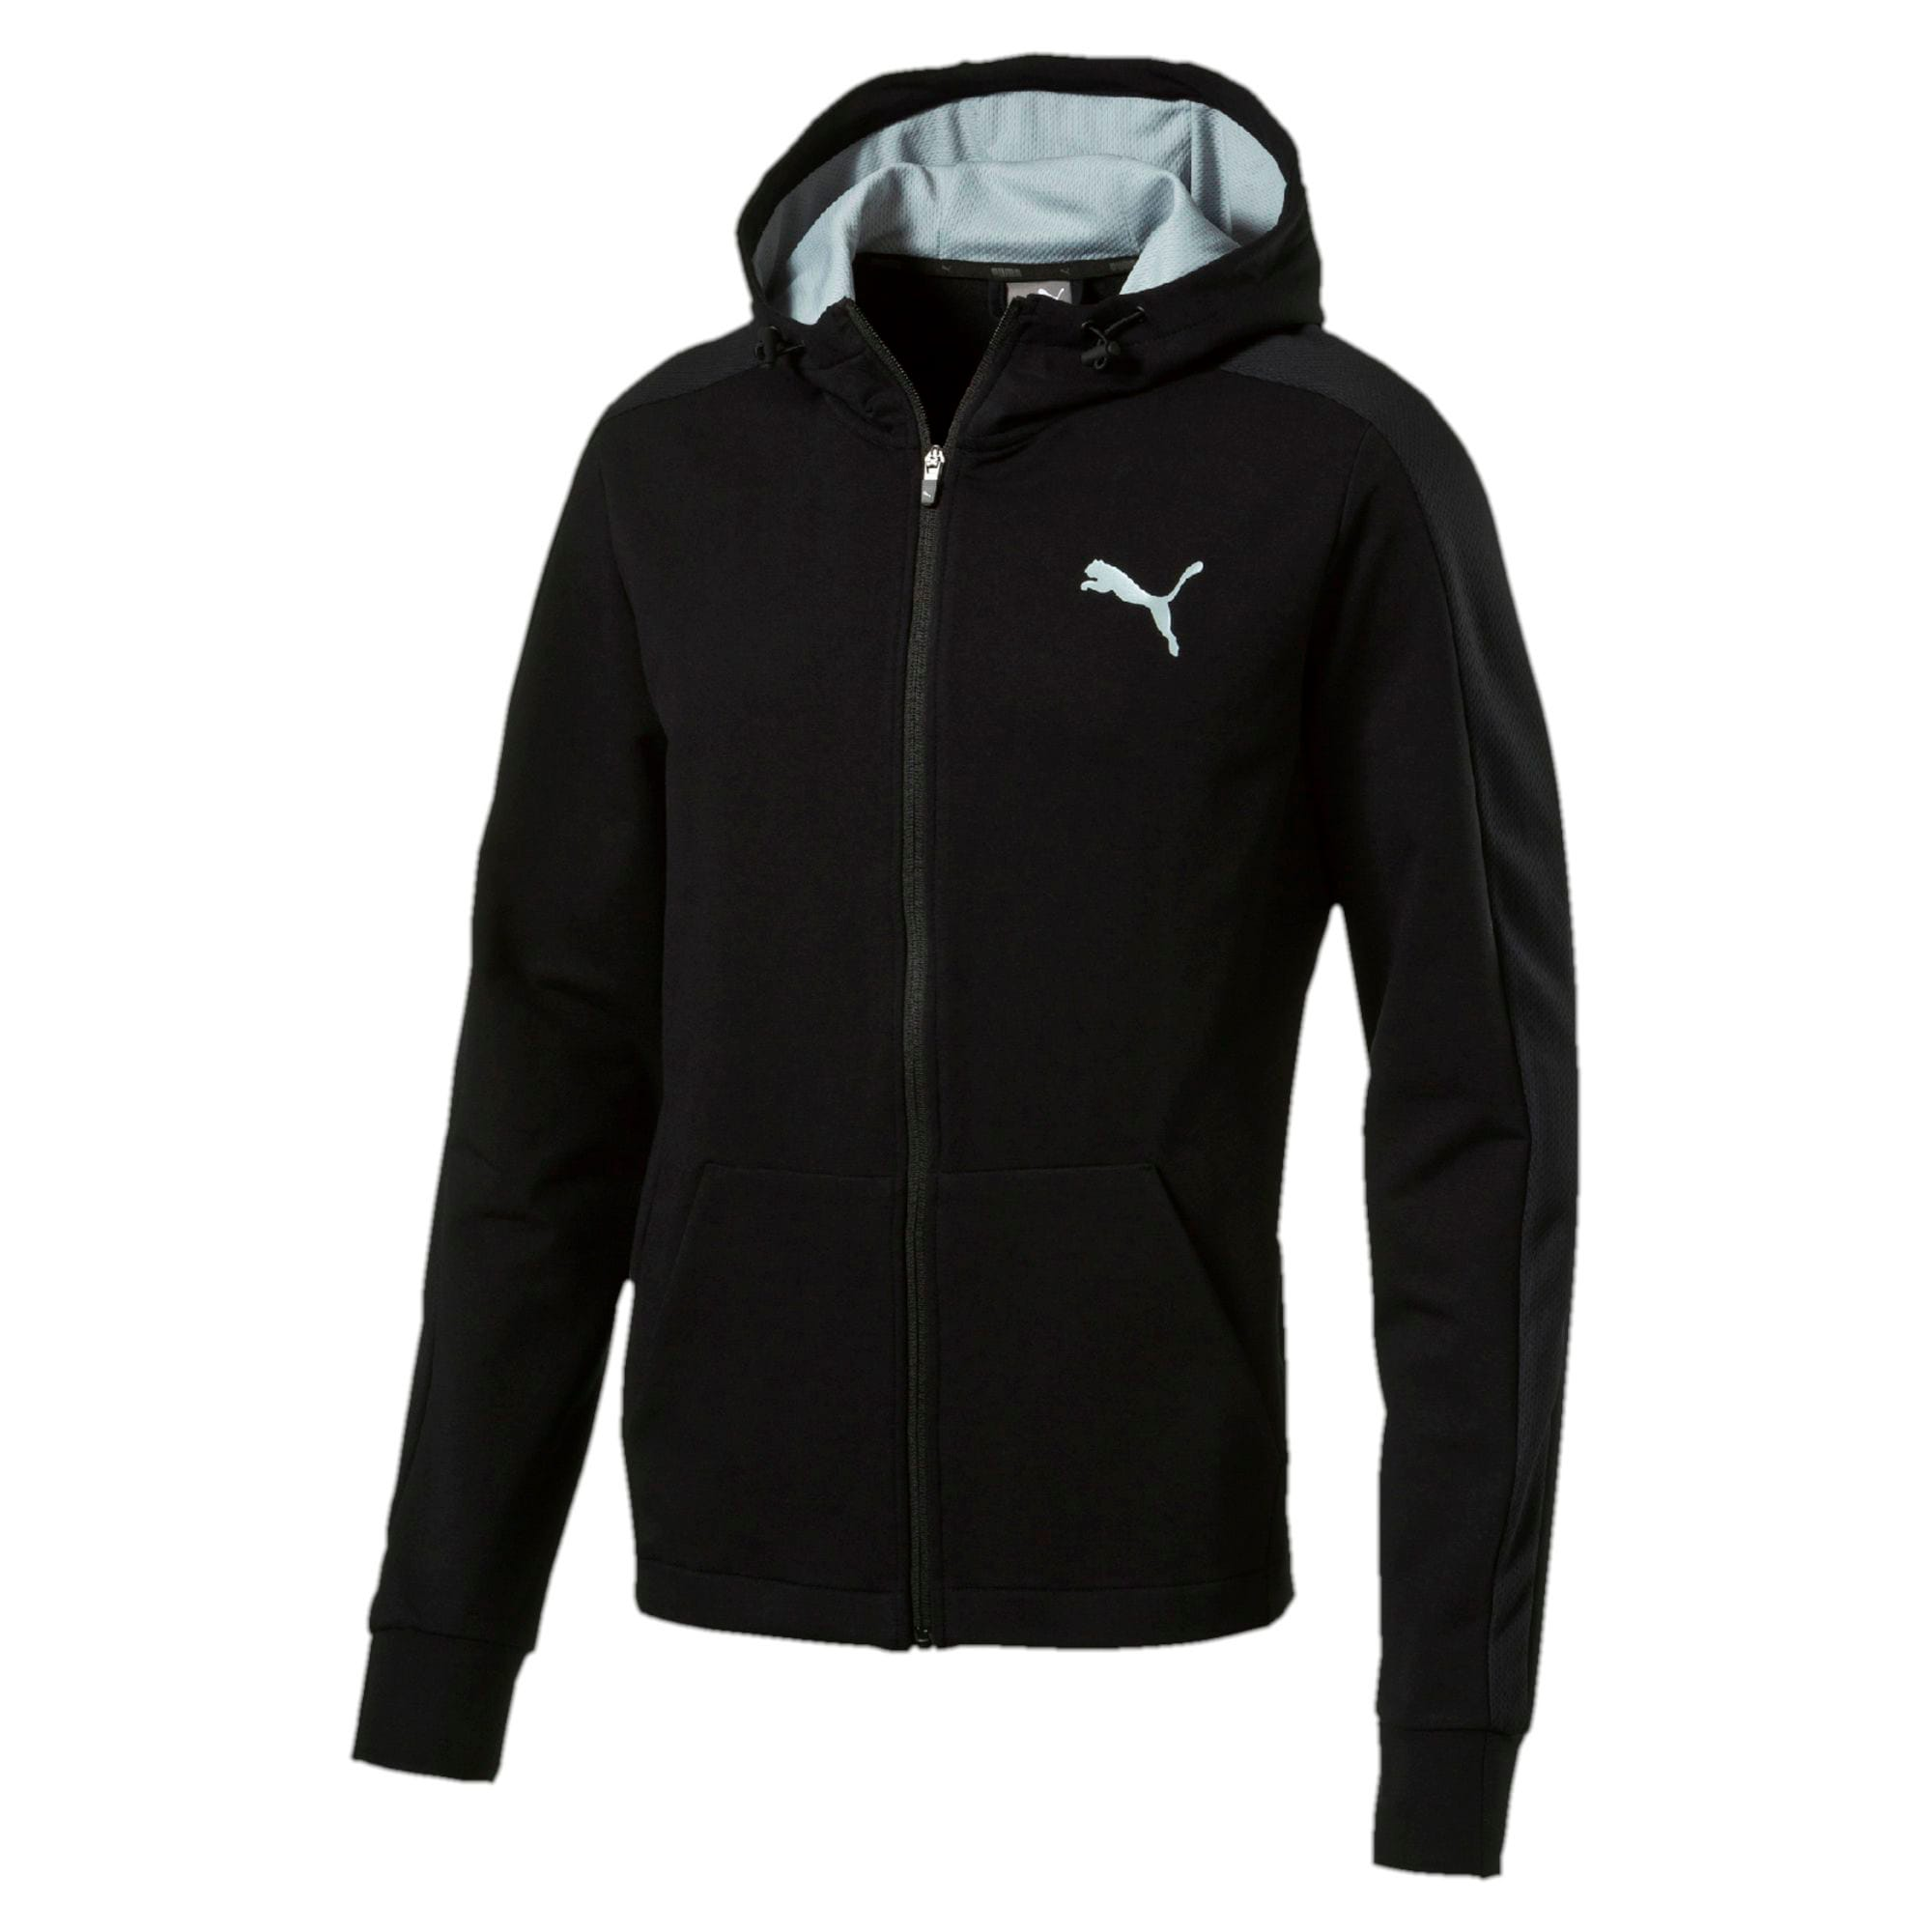 Thumbnail 1 of StretchLite Zip-Up Hoodie, Cotton Black, medium